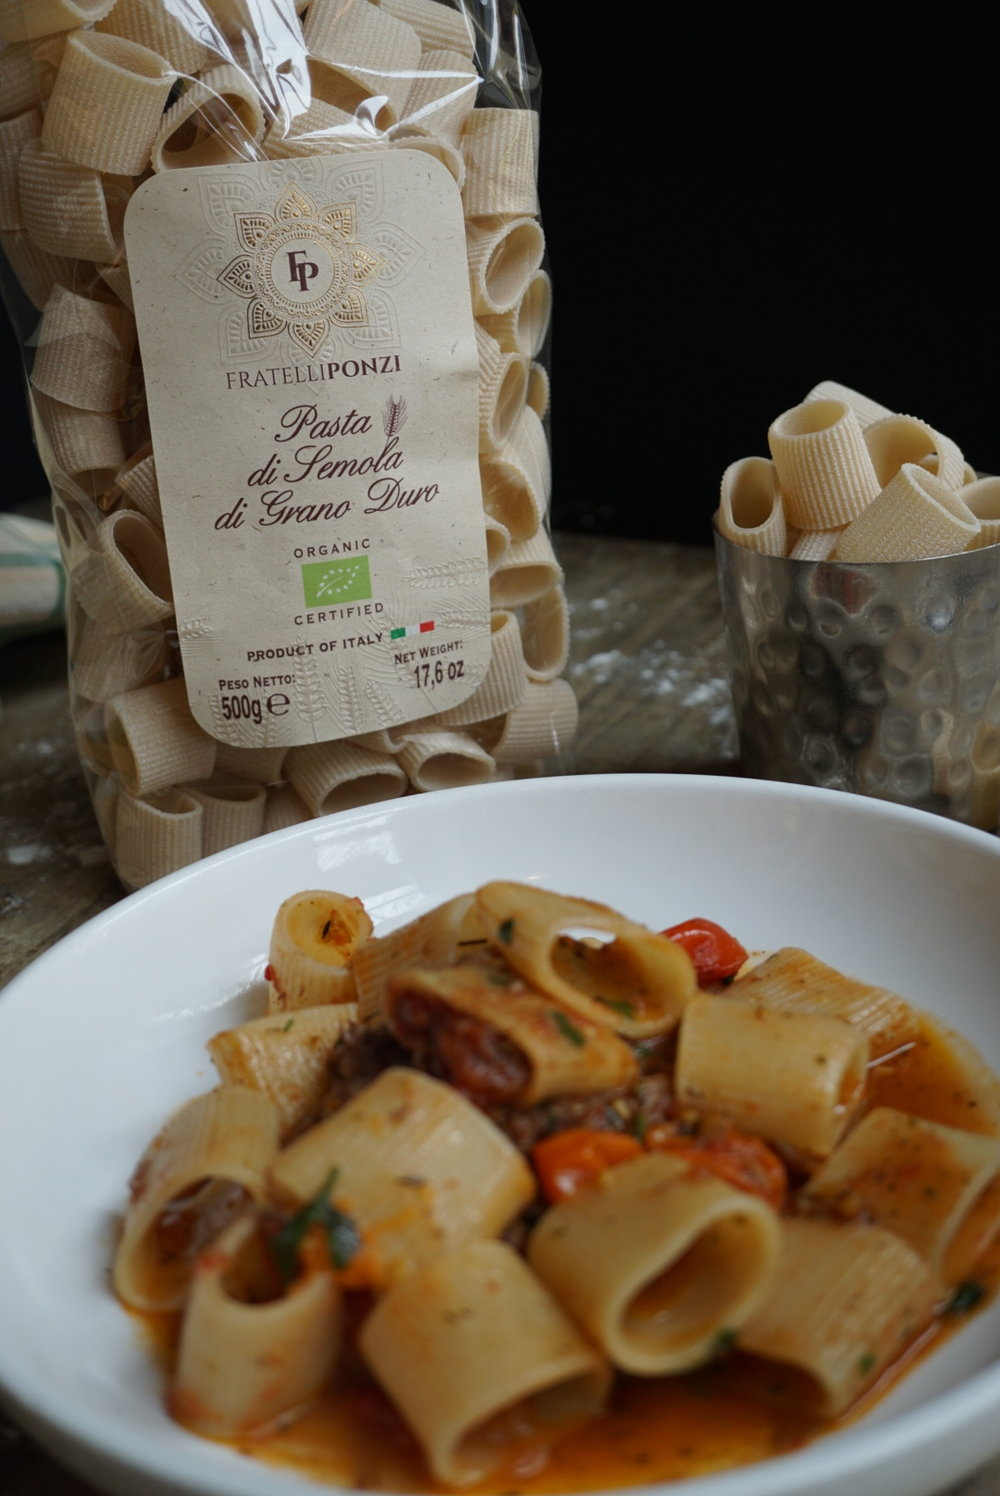 Fratelli Ponzi organic Italian pasta is comprised of heritage wheat that is exclusively made for our restaurant.